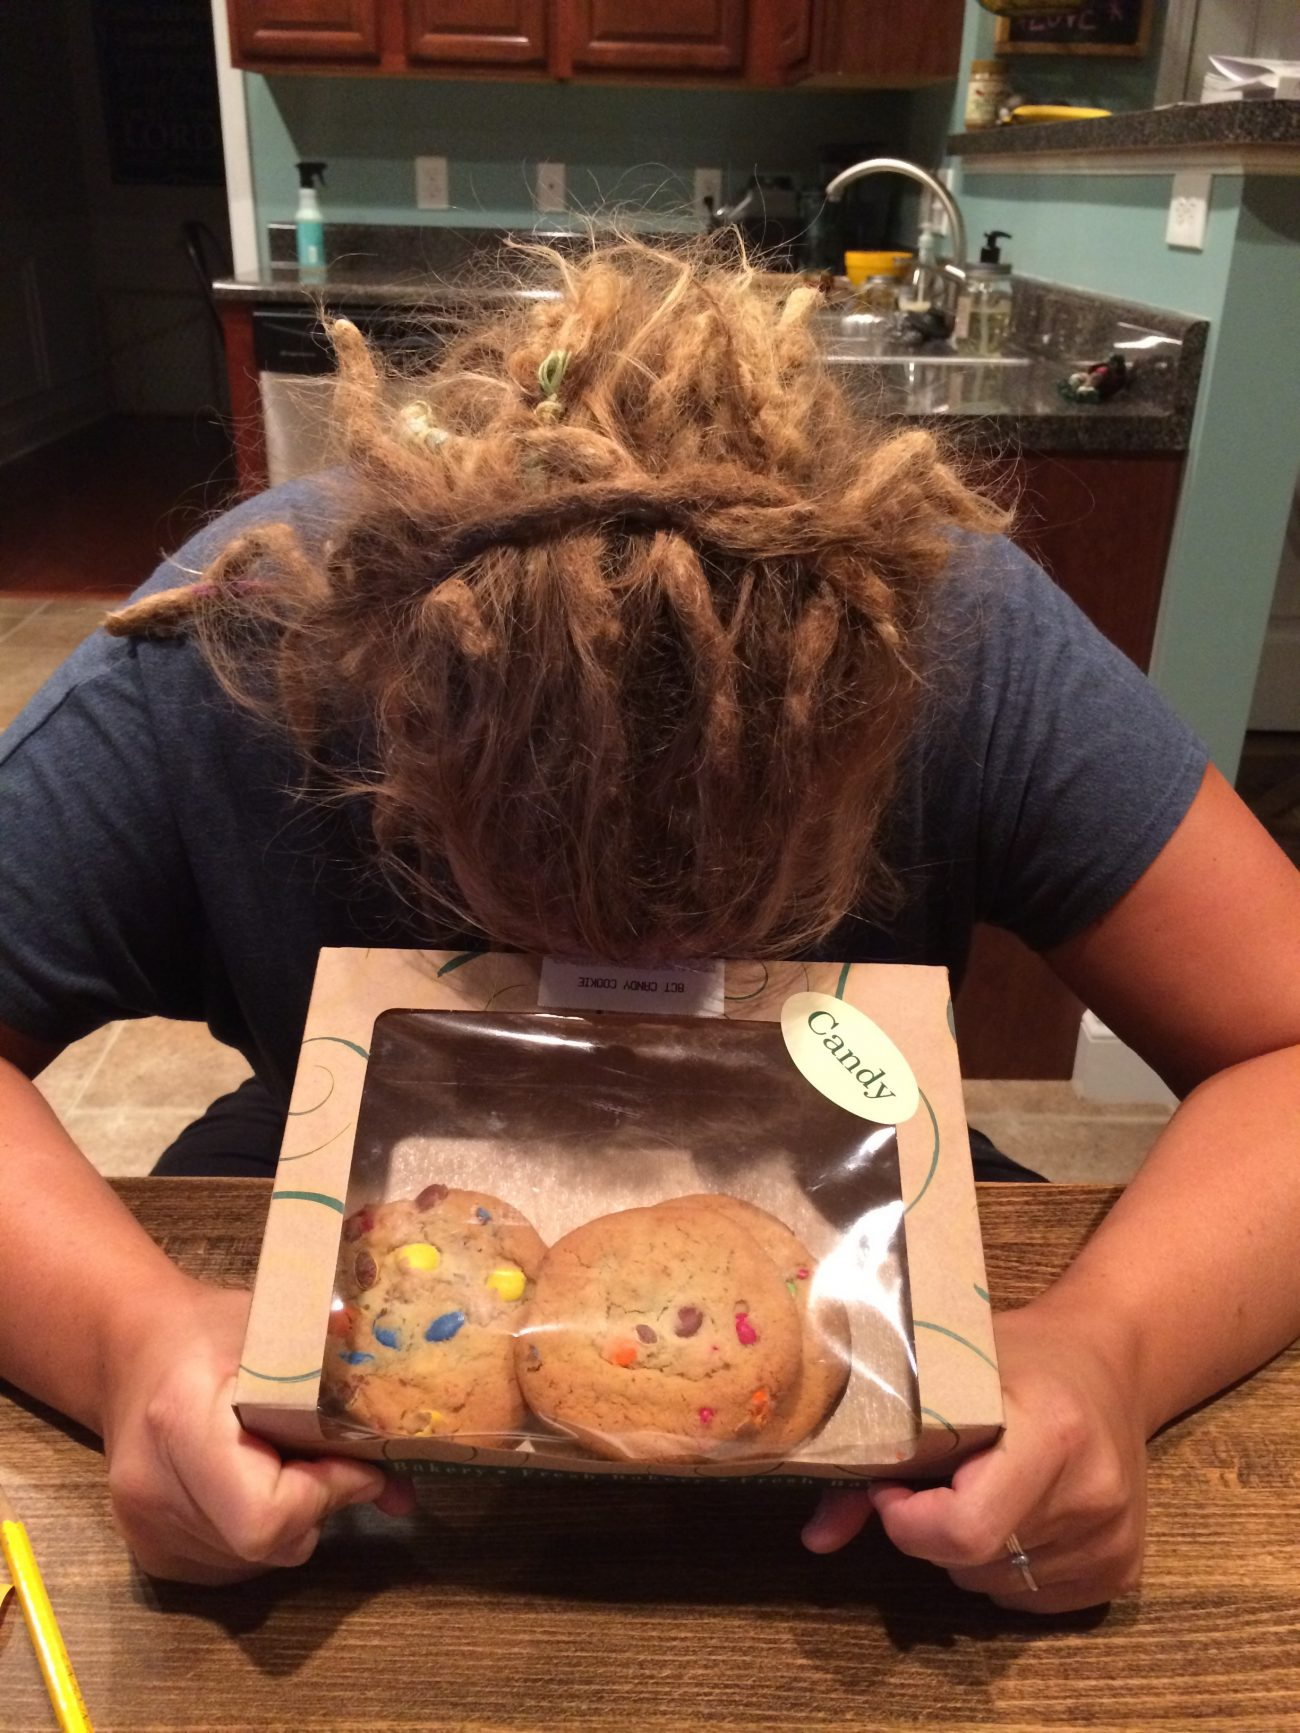 Ashley wanting cookies